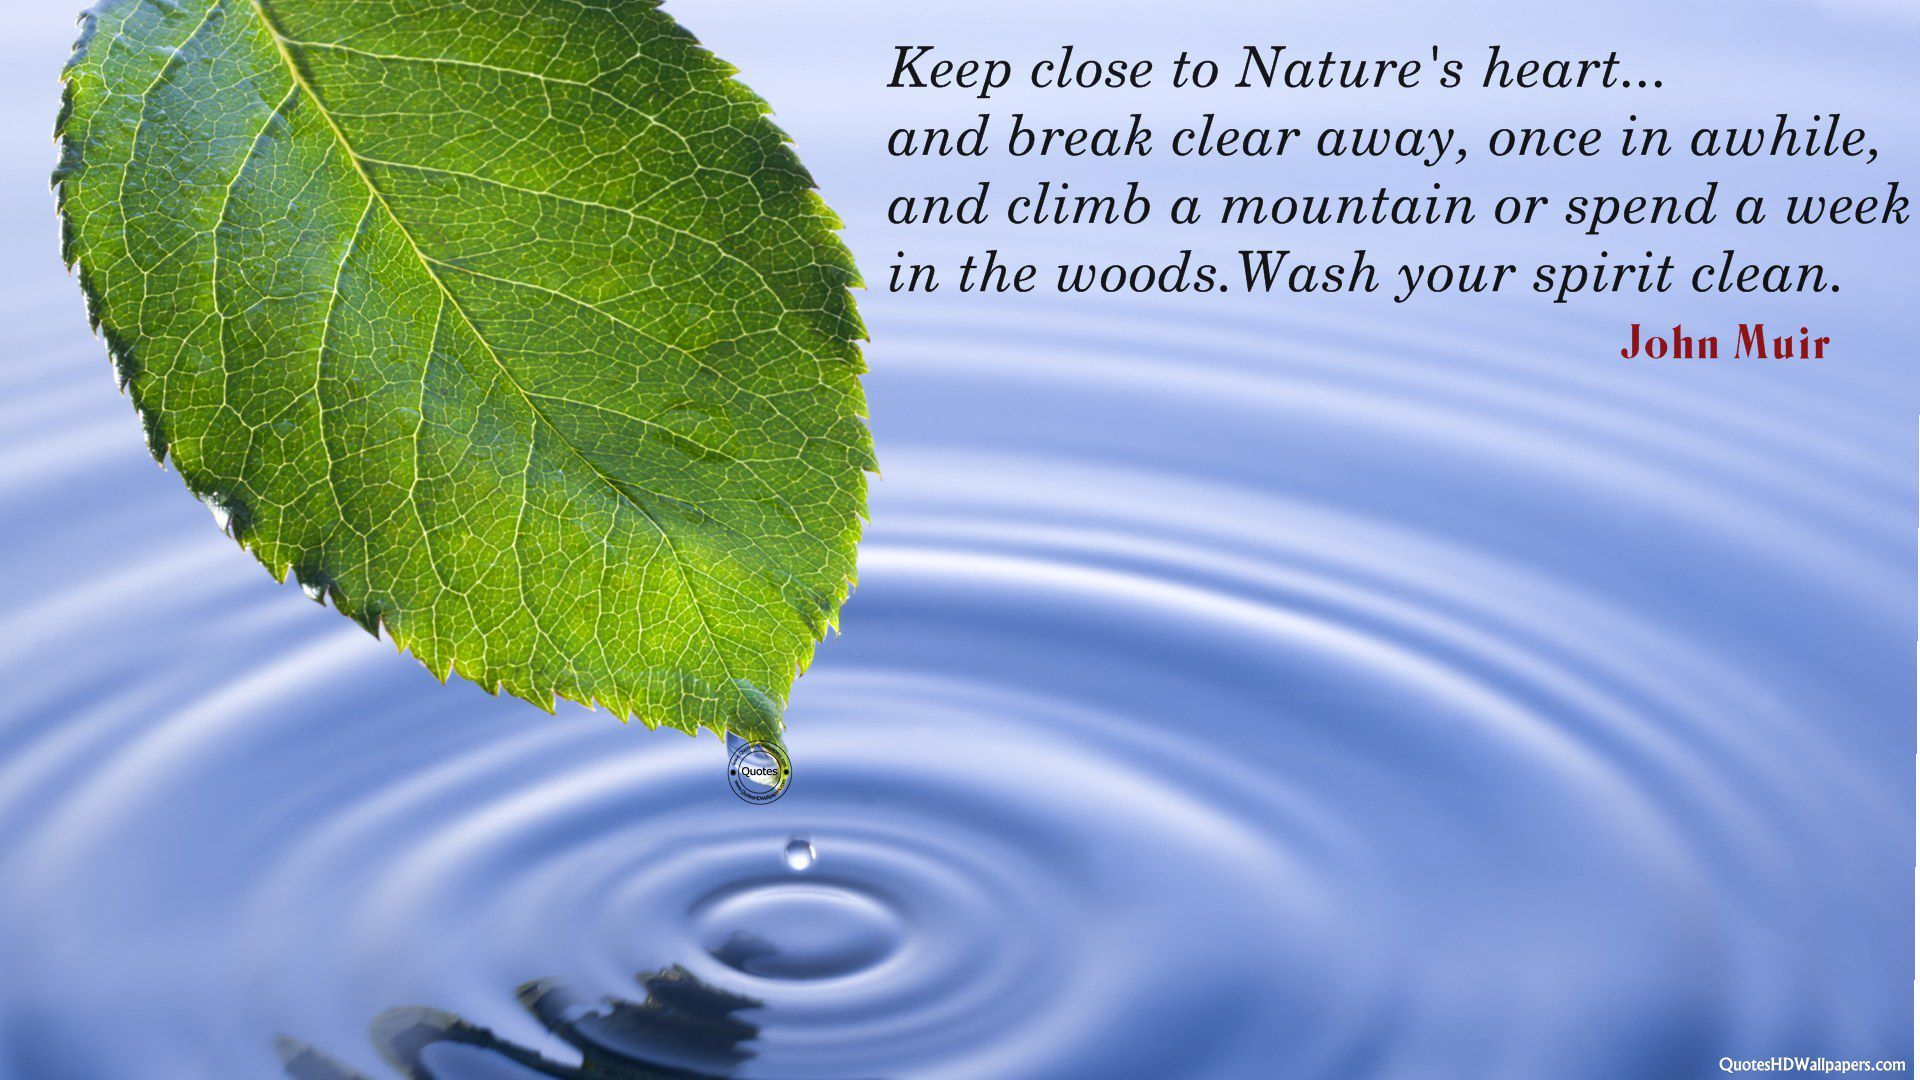 nature quotes hd wallpapers: Nature Greenery Quotes Background 1 HD Wallpapers